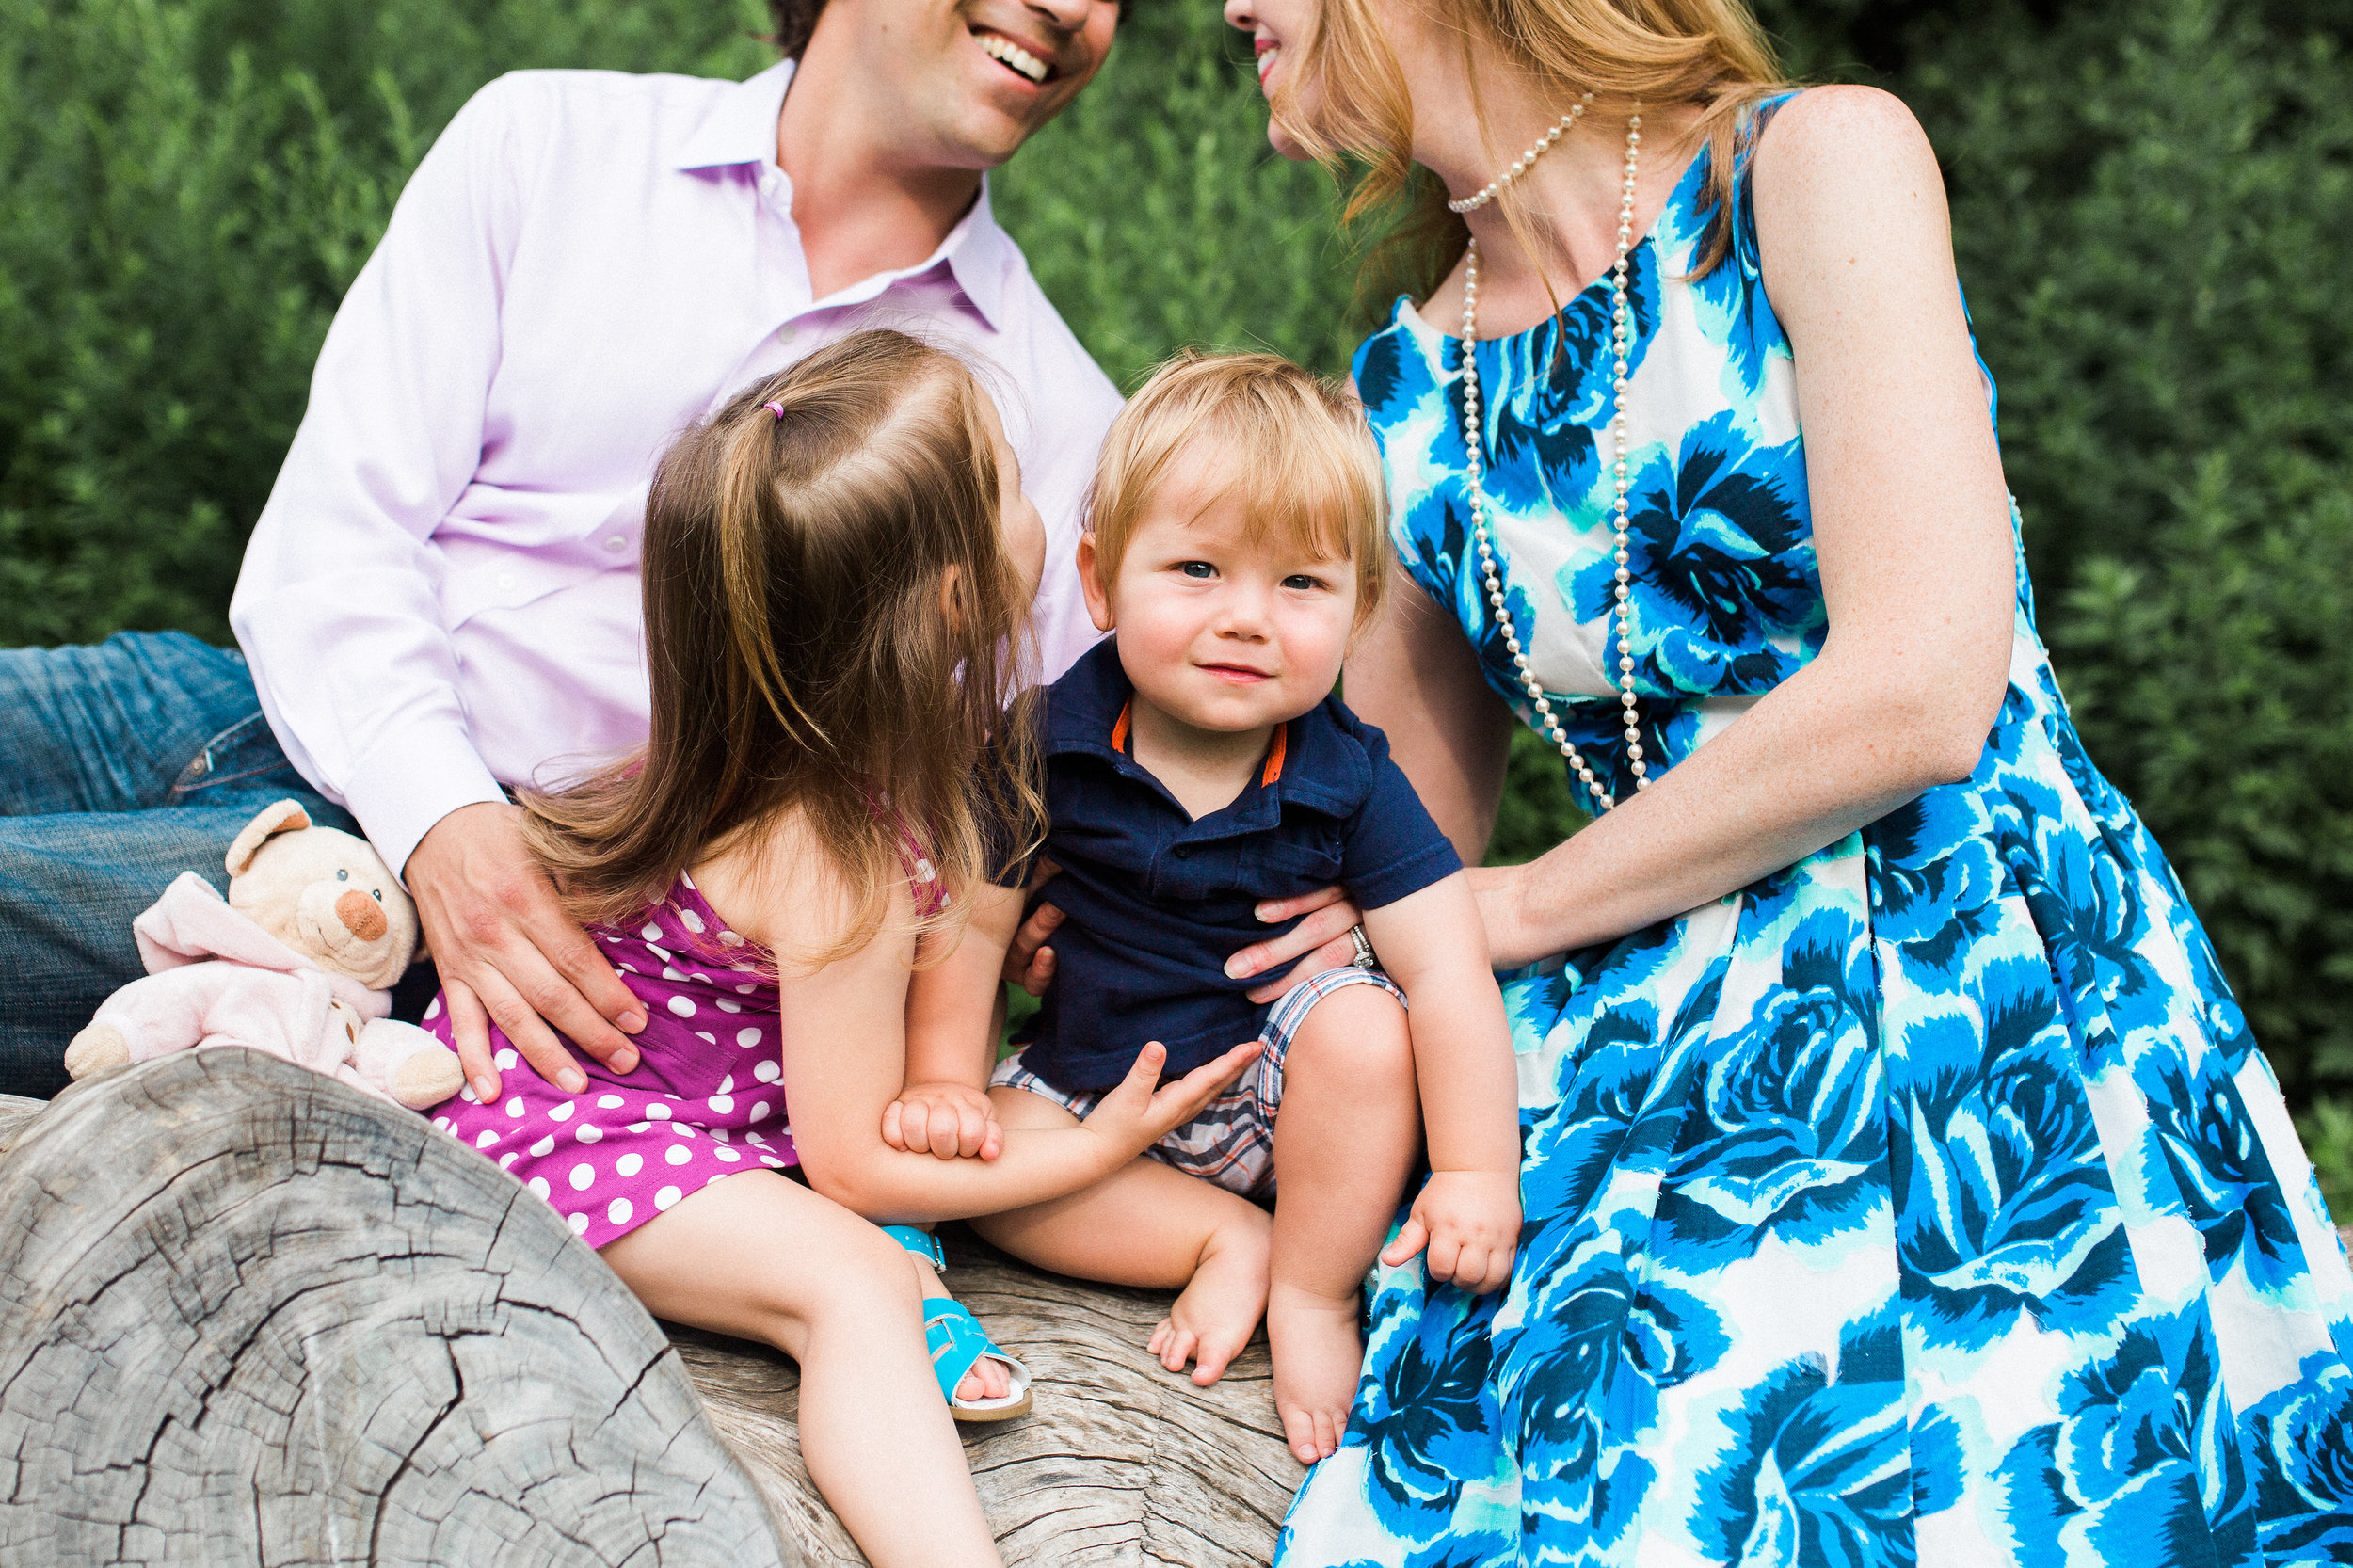 prospect-park-family-photography_natural-playground-6.jpg